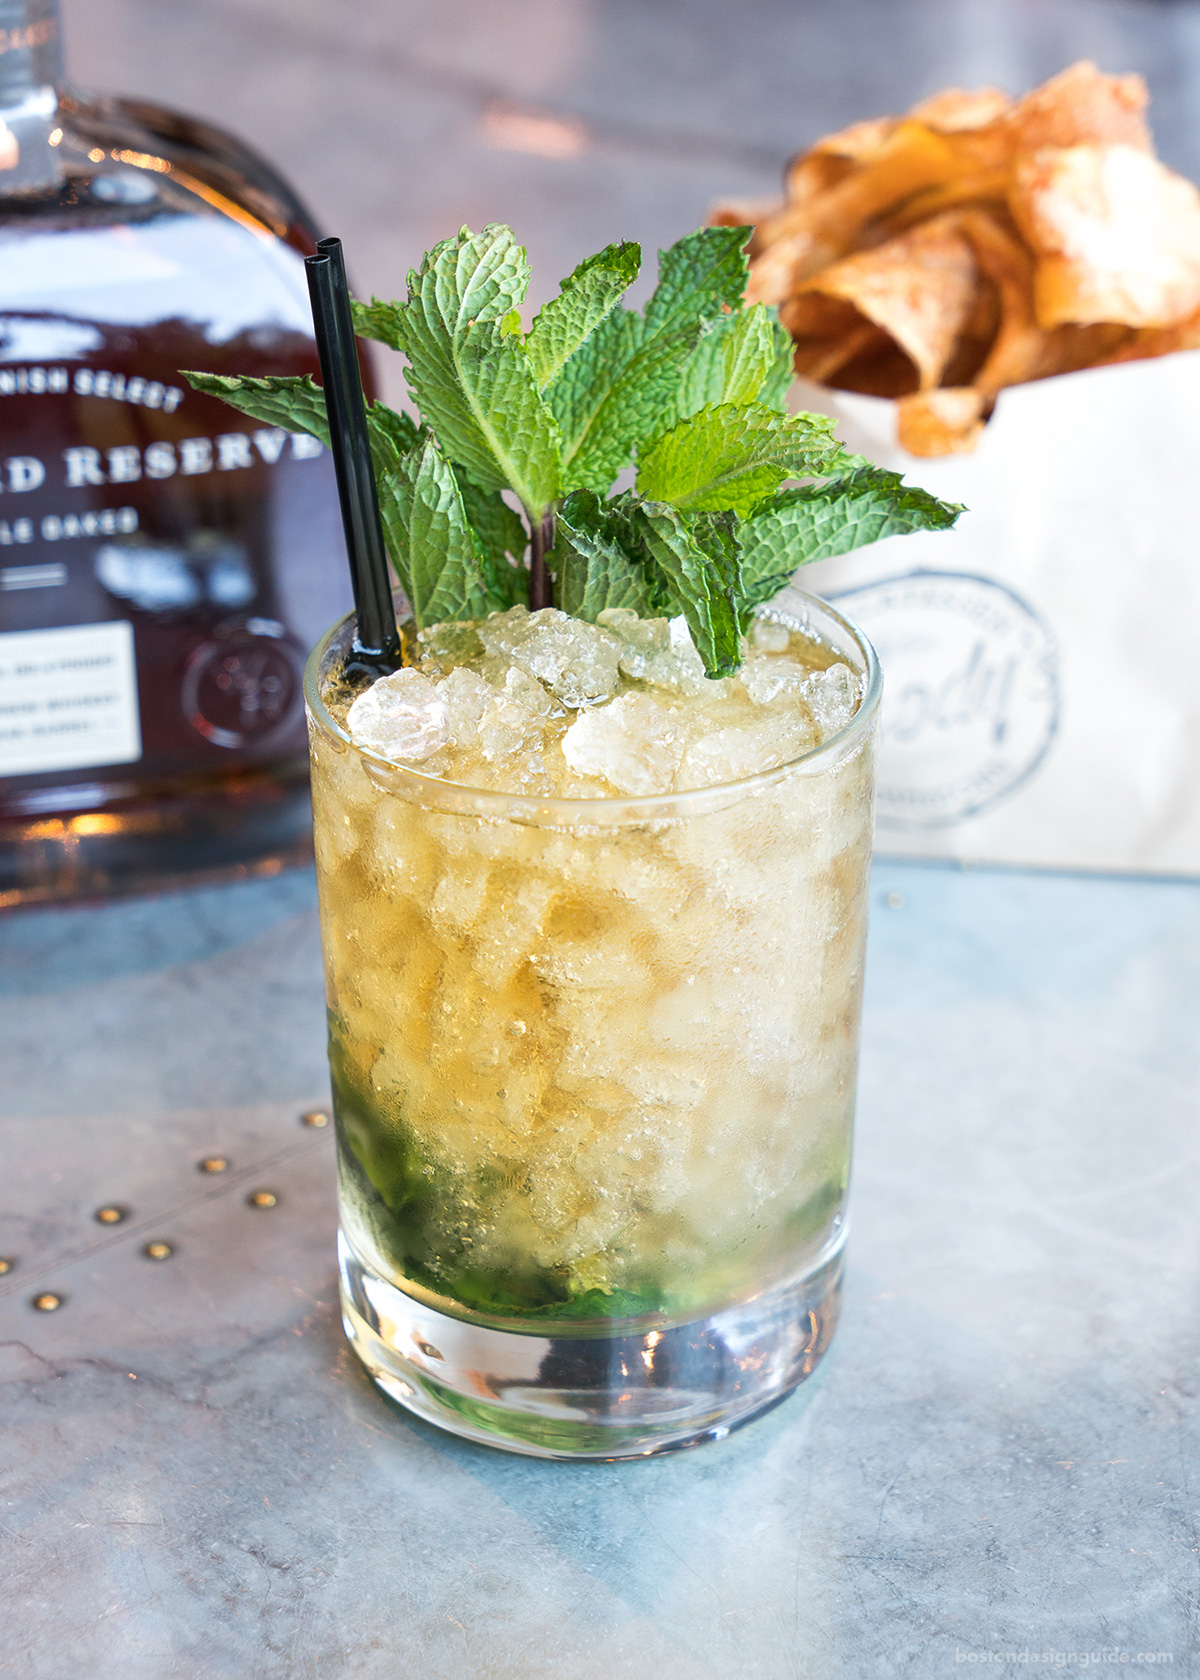 Mint Julep Recipe by Boston Bar